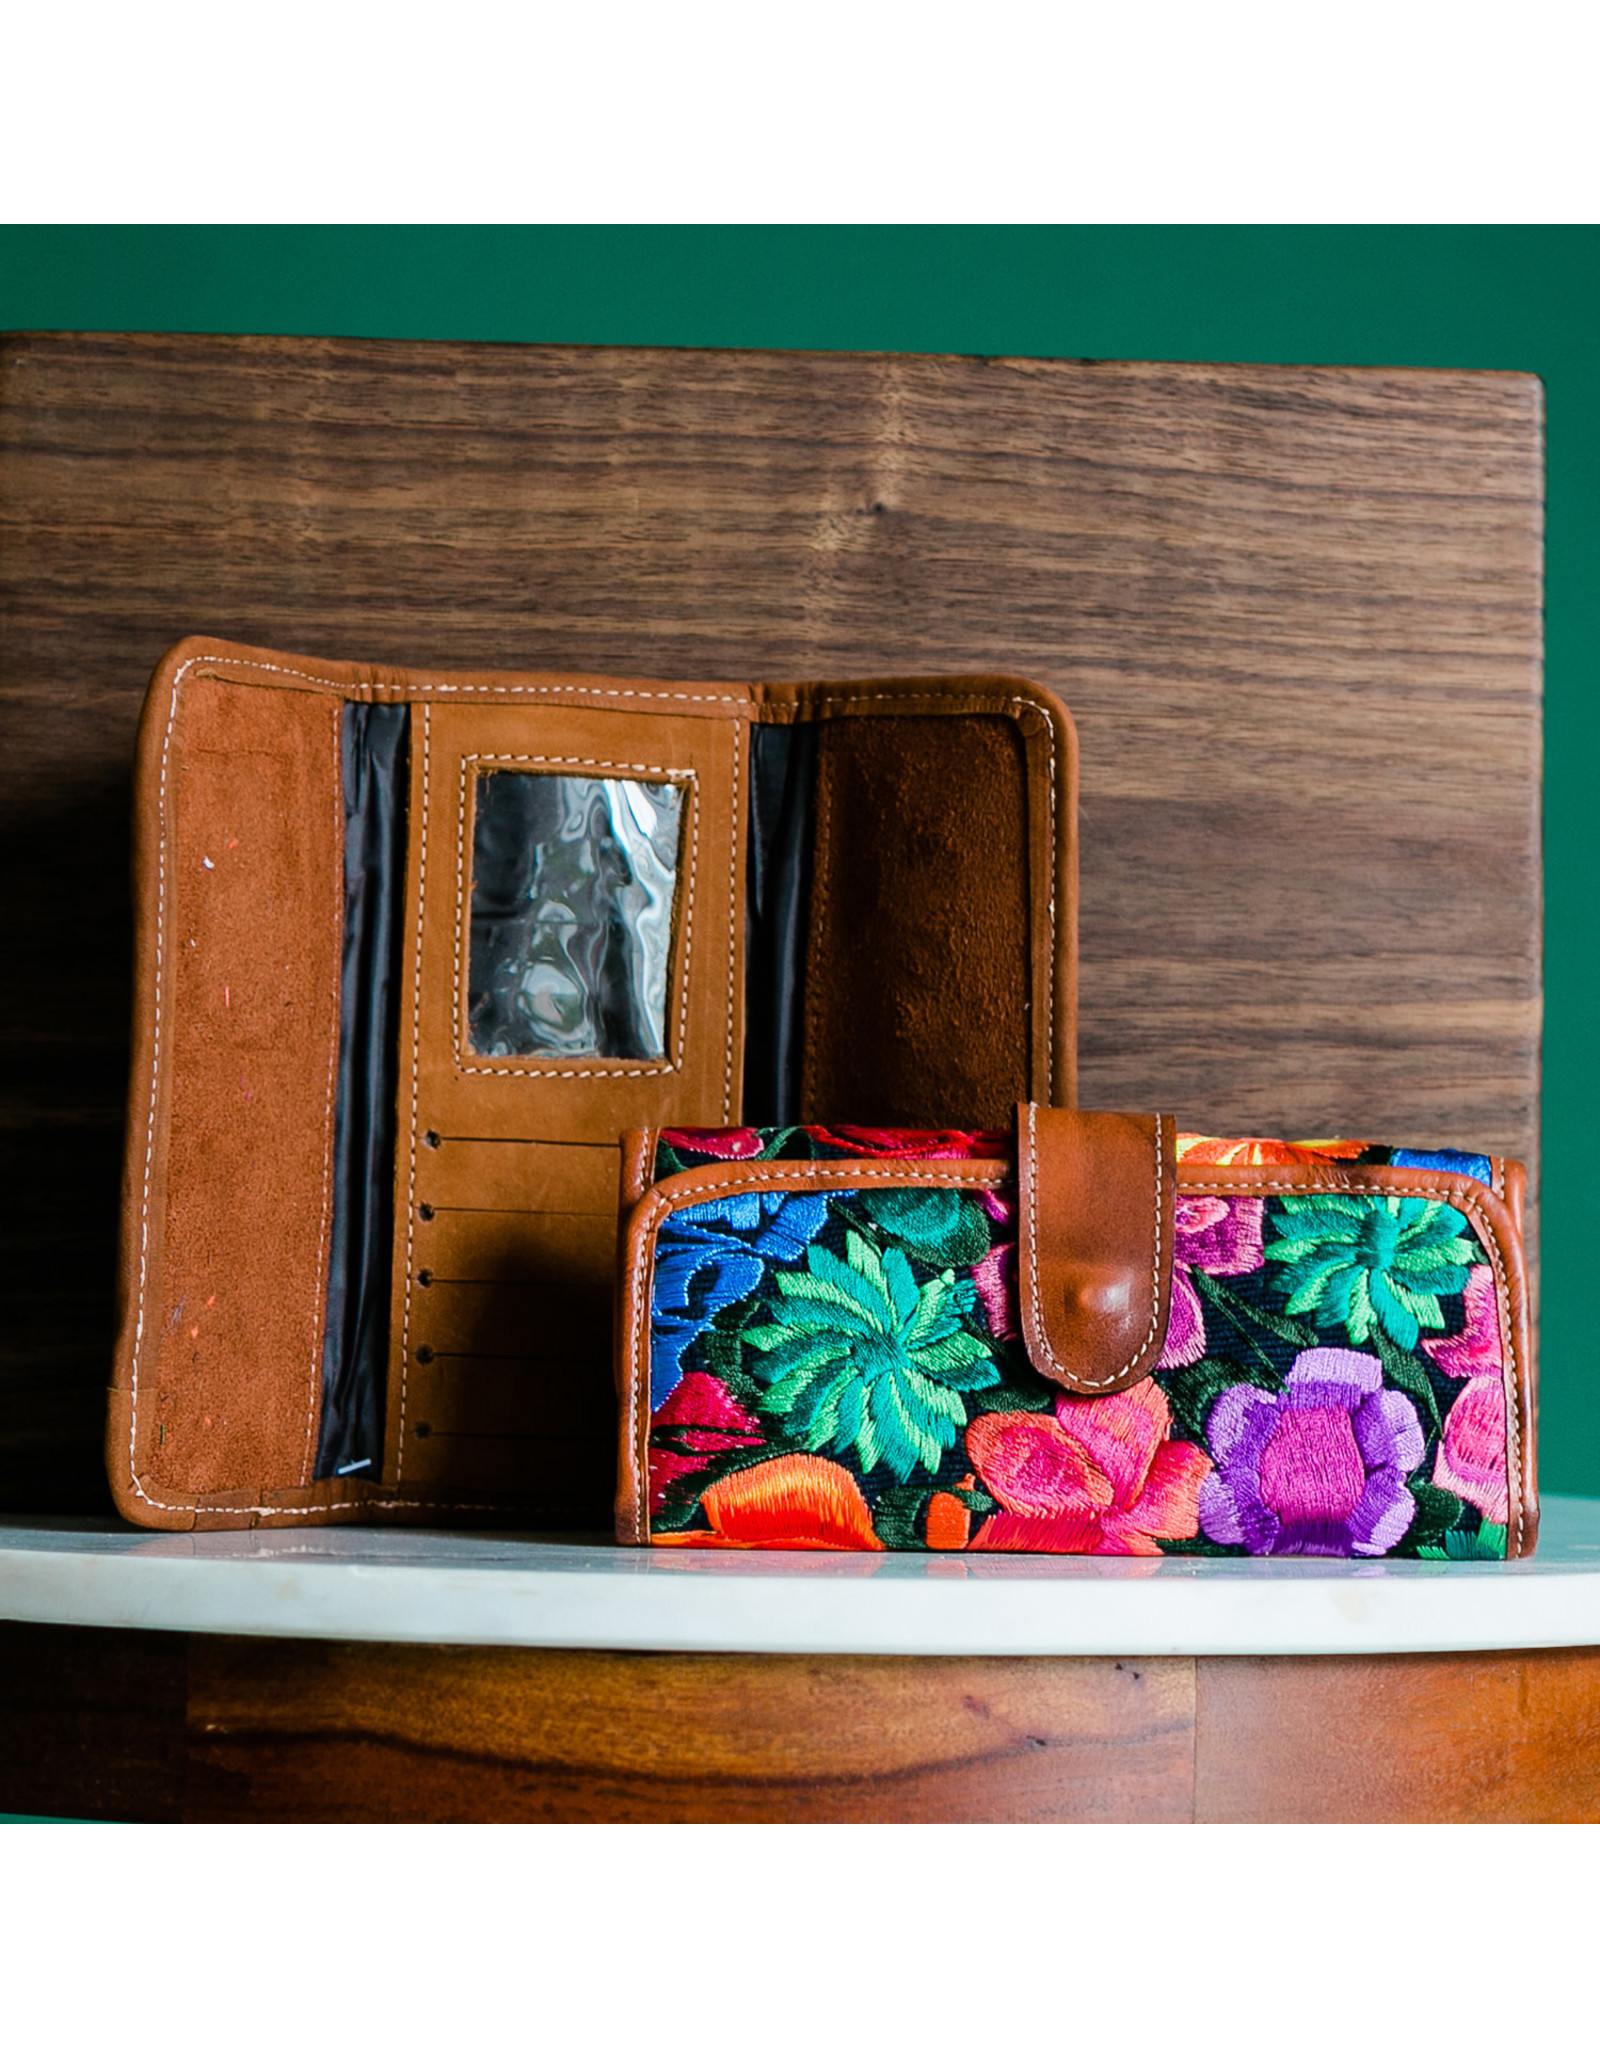 Lucia's Imports Floral Embroidered Leather Wallet, Guatemala